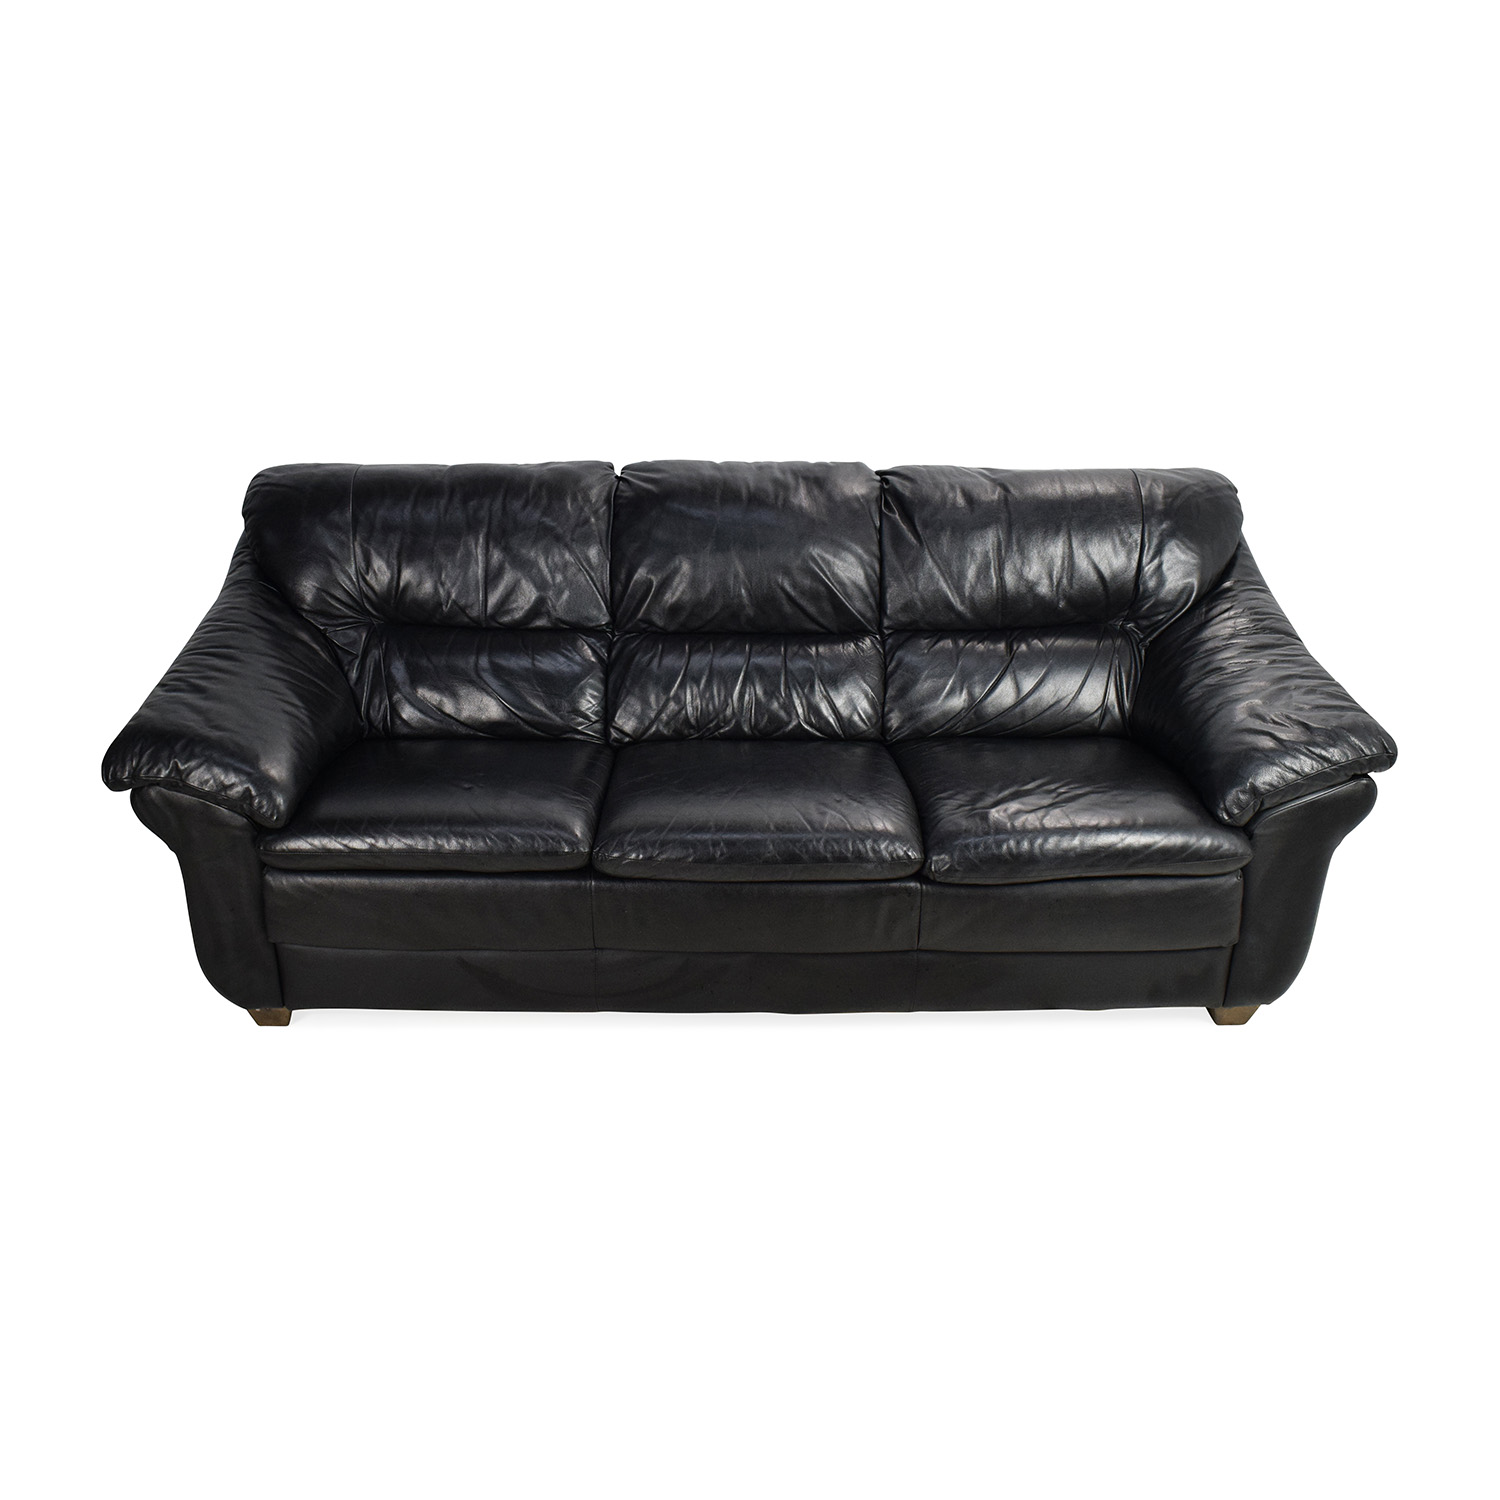 Elegant Used Italian Leather Sectional Sofa Sectional Sofas